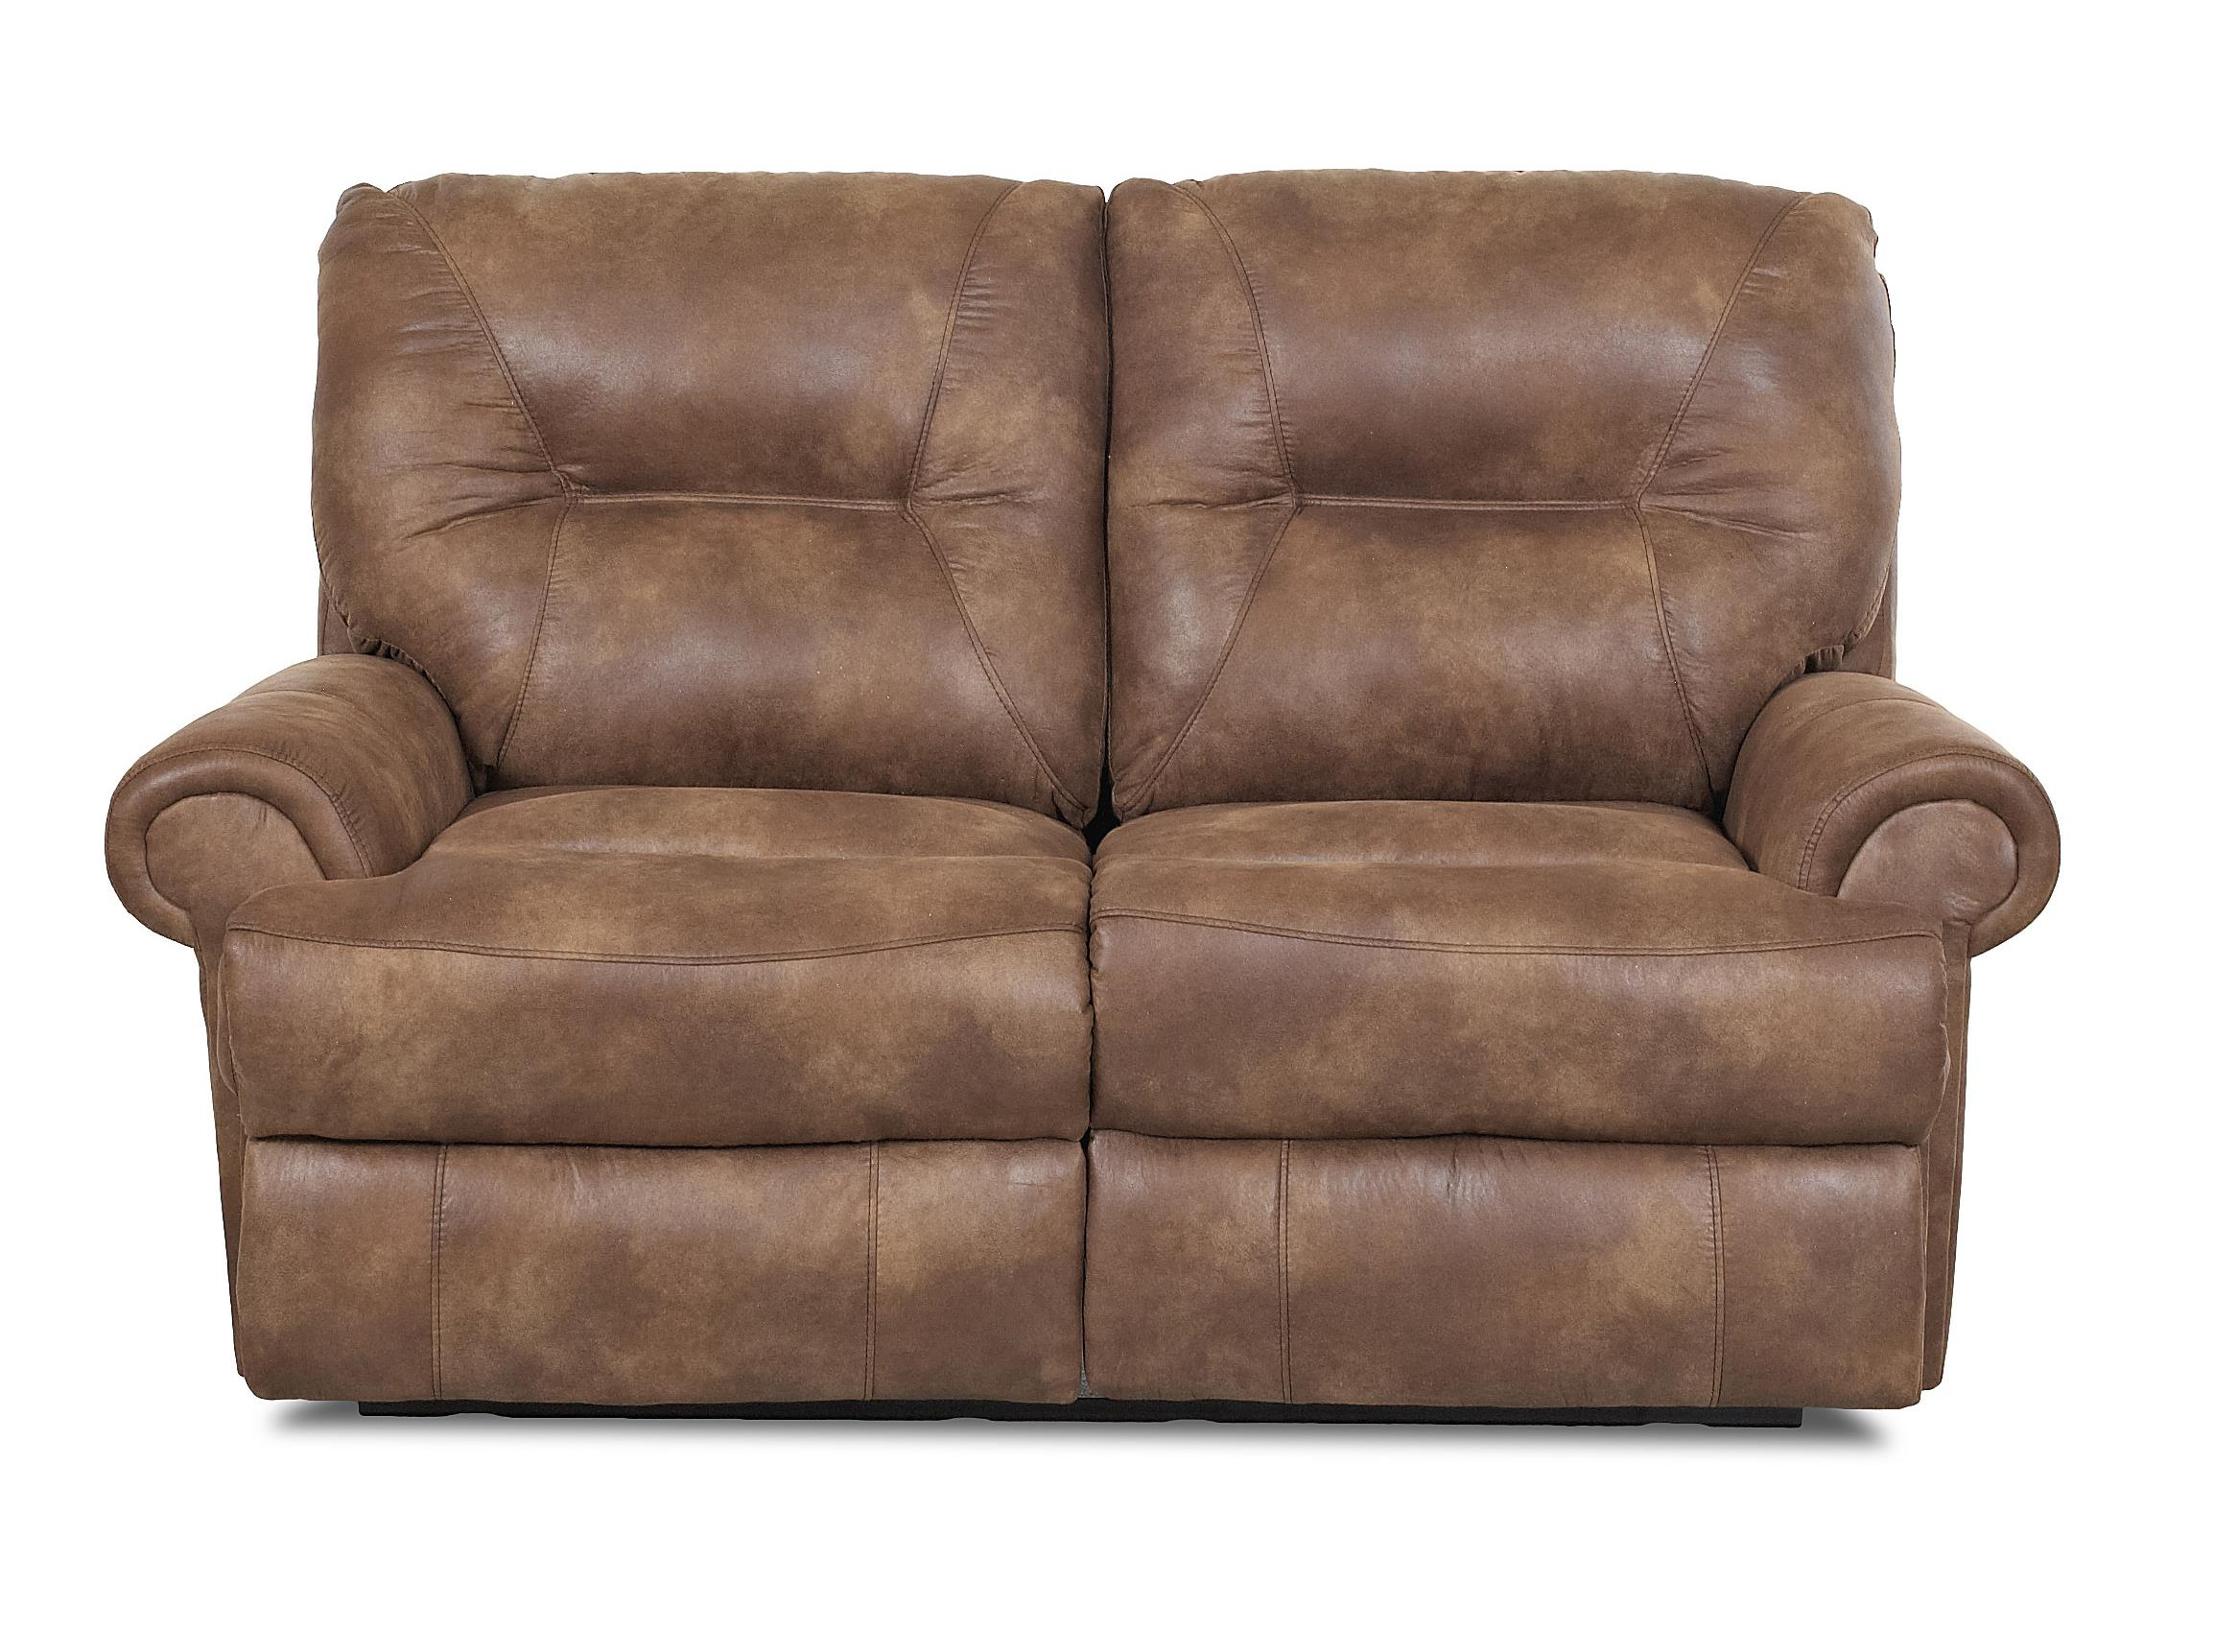 s reclining davenport living sofas bernie power room headrest furniture loveseat loveseats with archer phyl tan